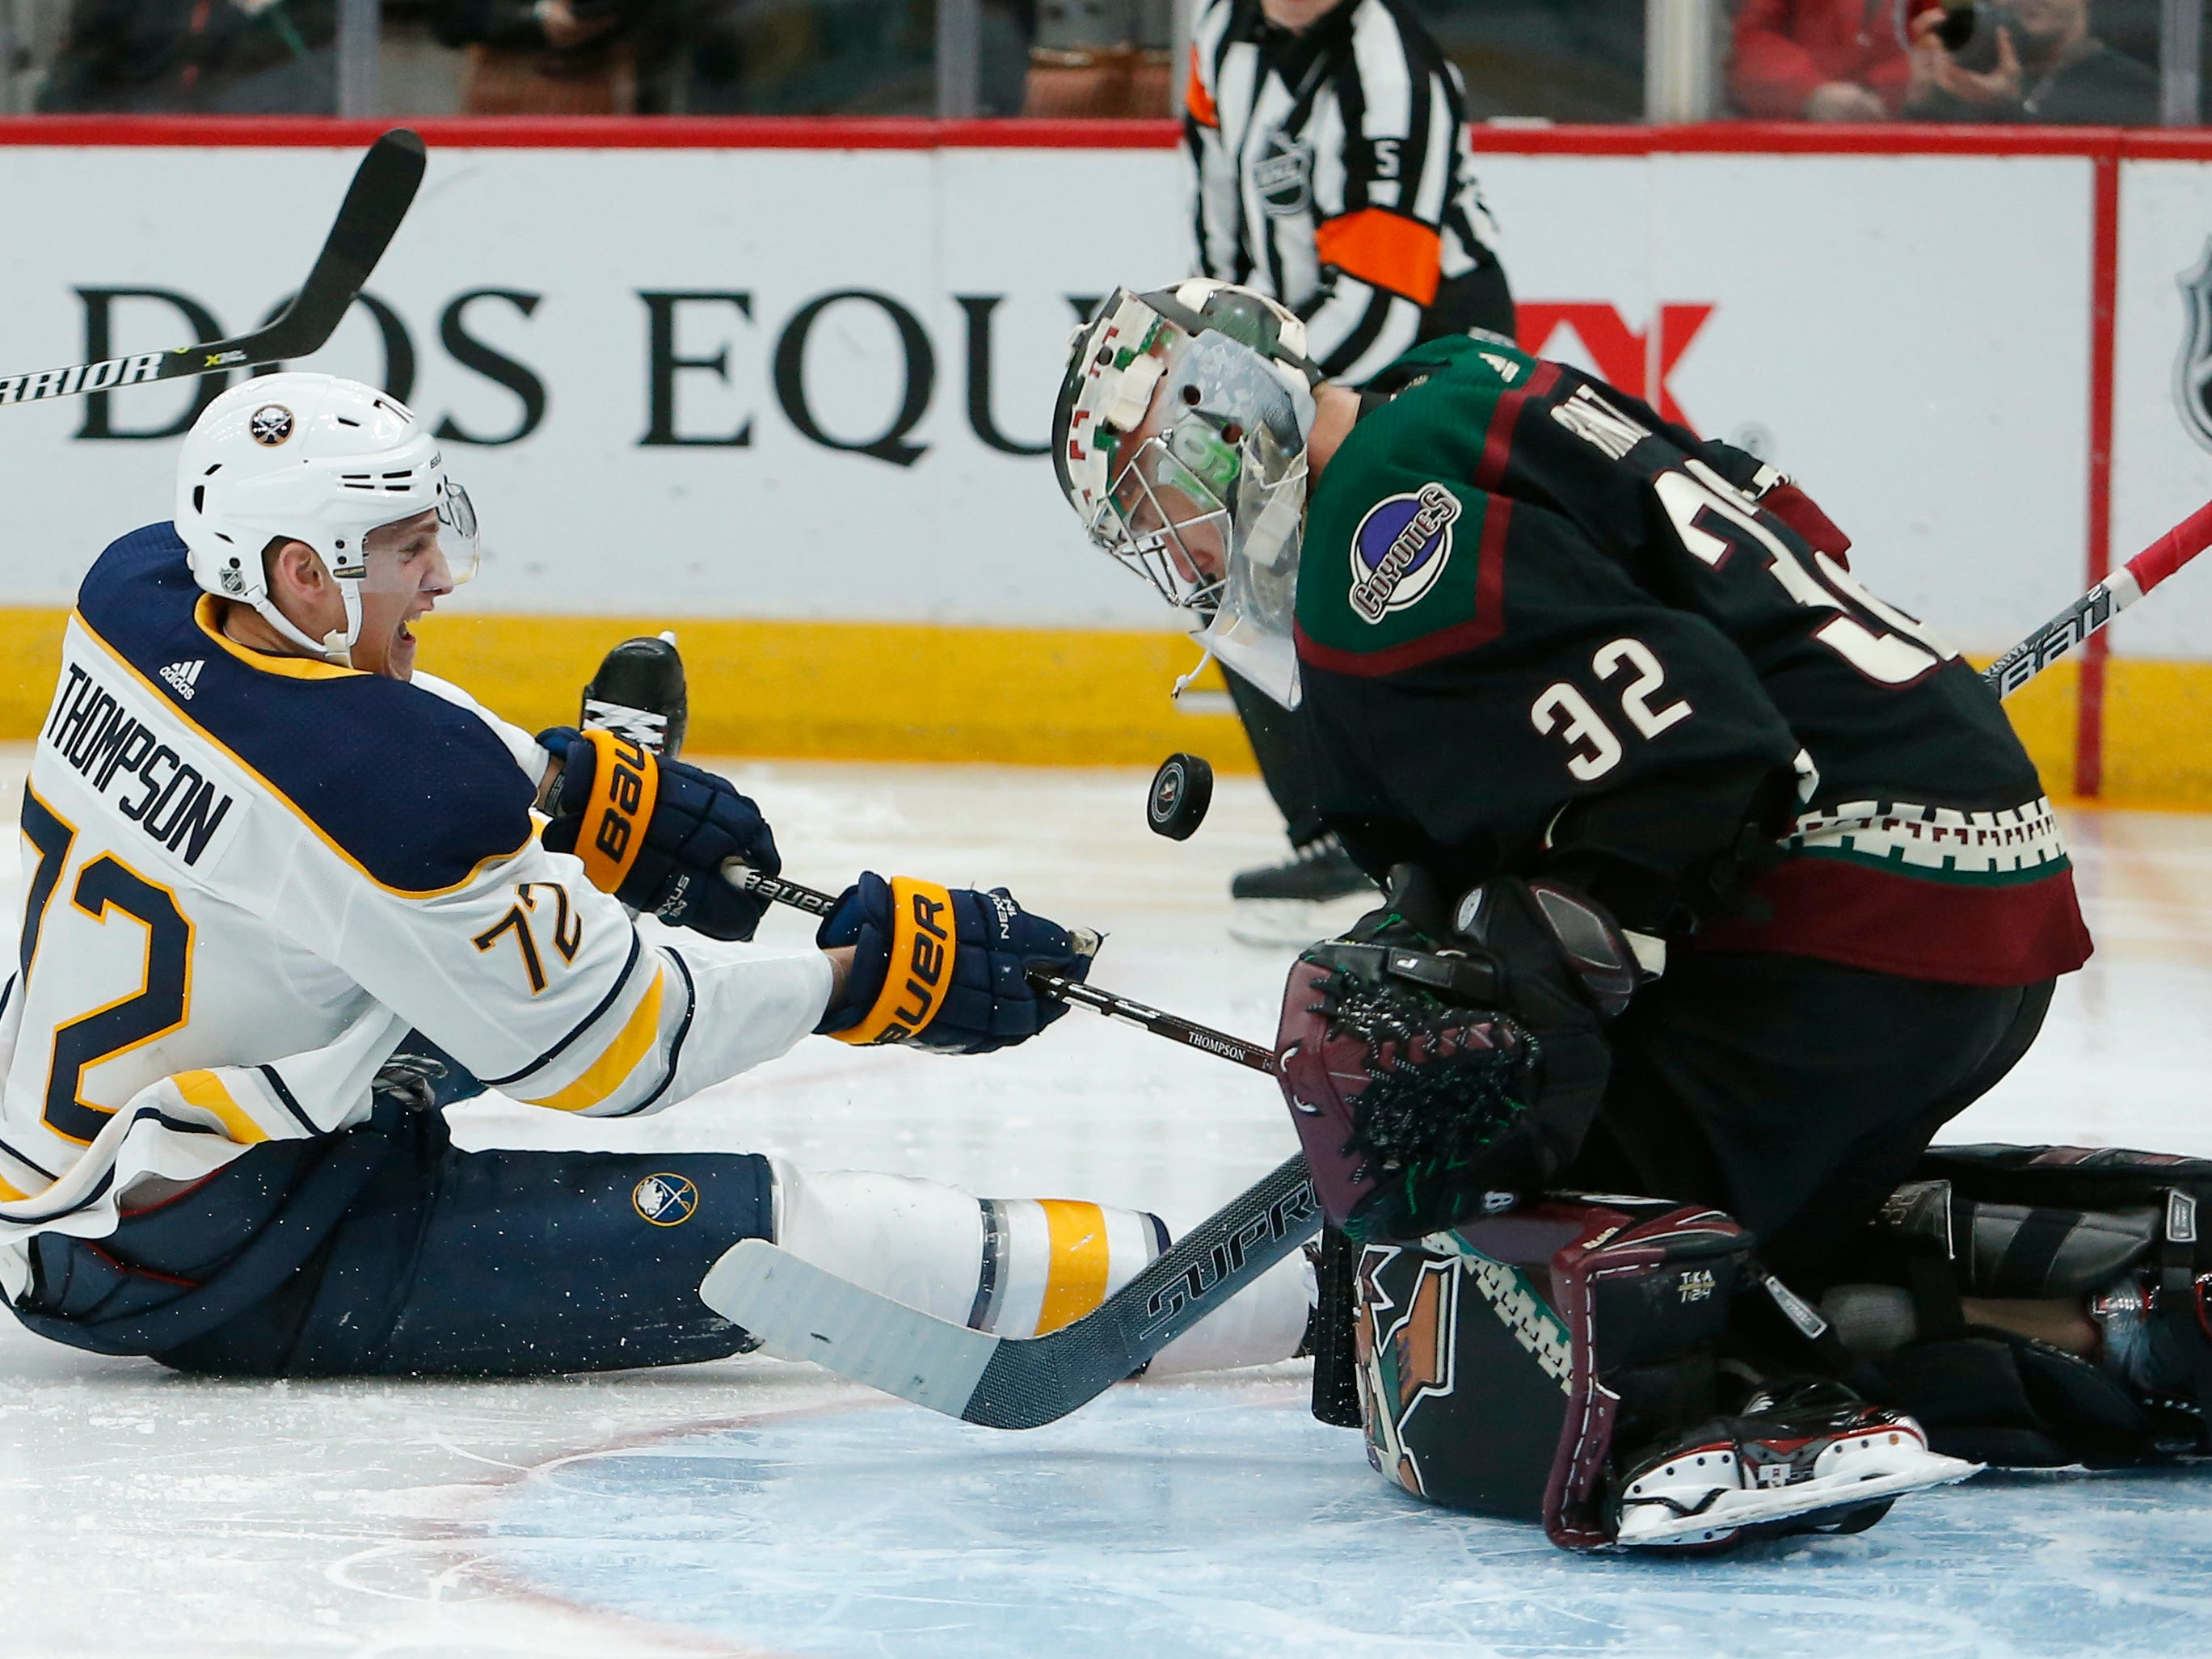 Arizona Coyotes goaltender Antti Raanta (32) makes the save on Buffalo Sabres center Tage Thompson during the third period of an NHL hockey game Saturday, Oct. 13, 2018, in Glendale, Ariz.